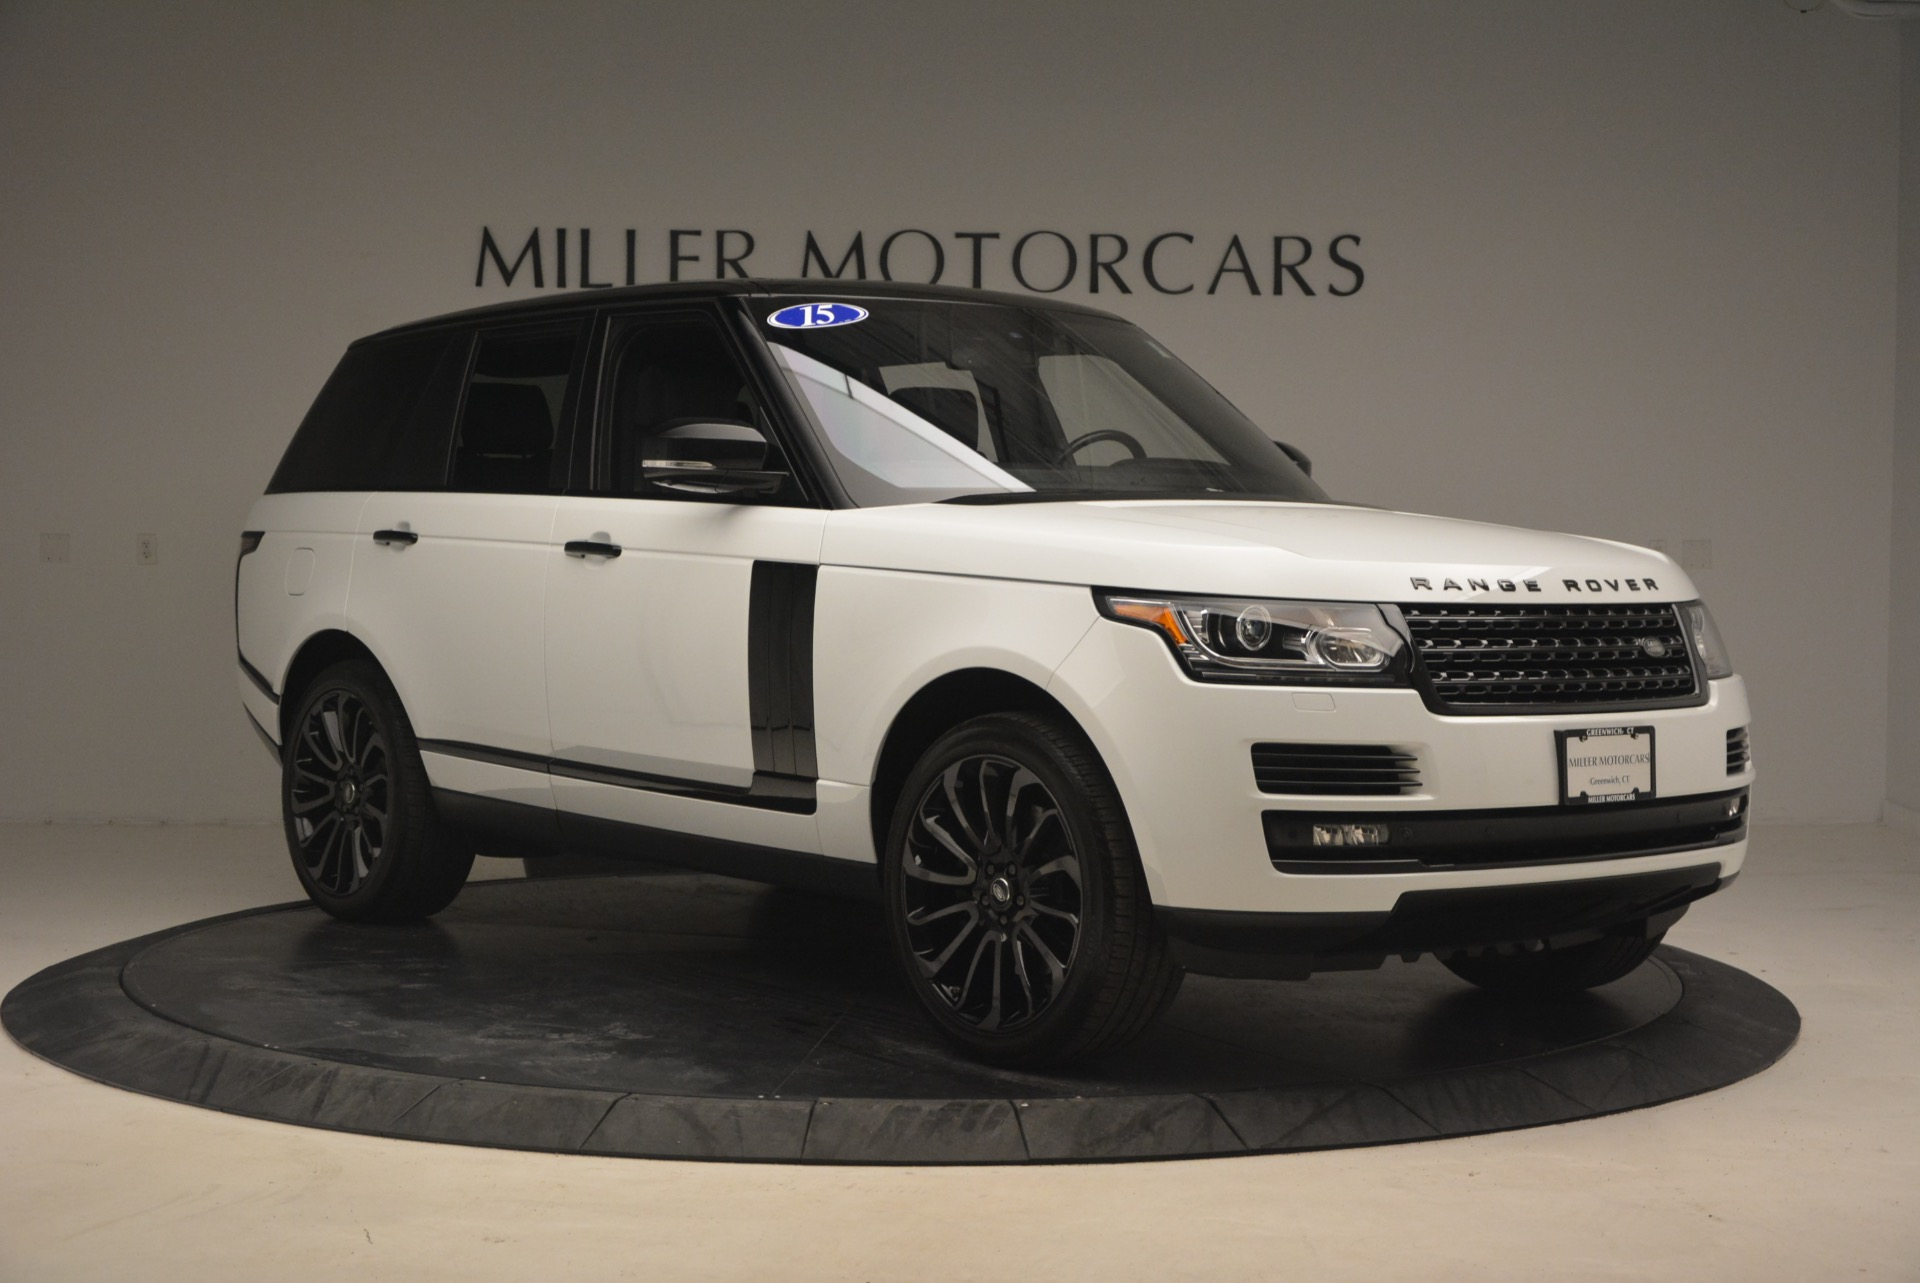 Used 2015 Land Rover Range Rover Supercharged For Sale In Westport, CT 1292_p11